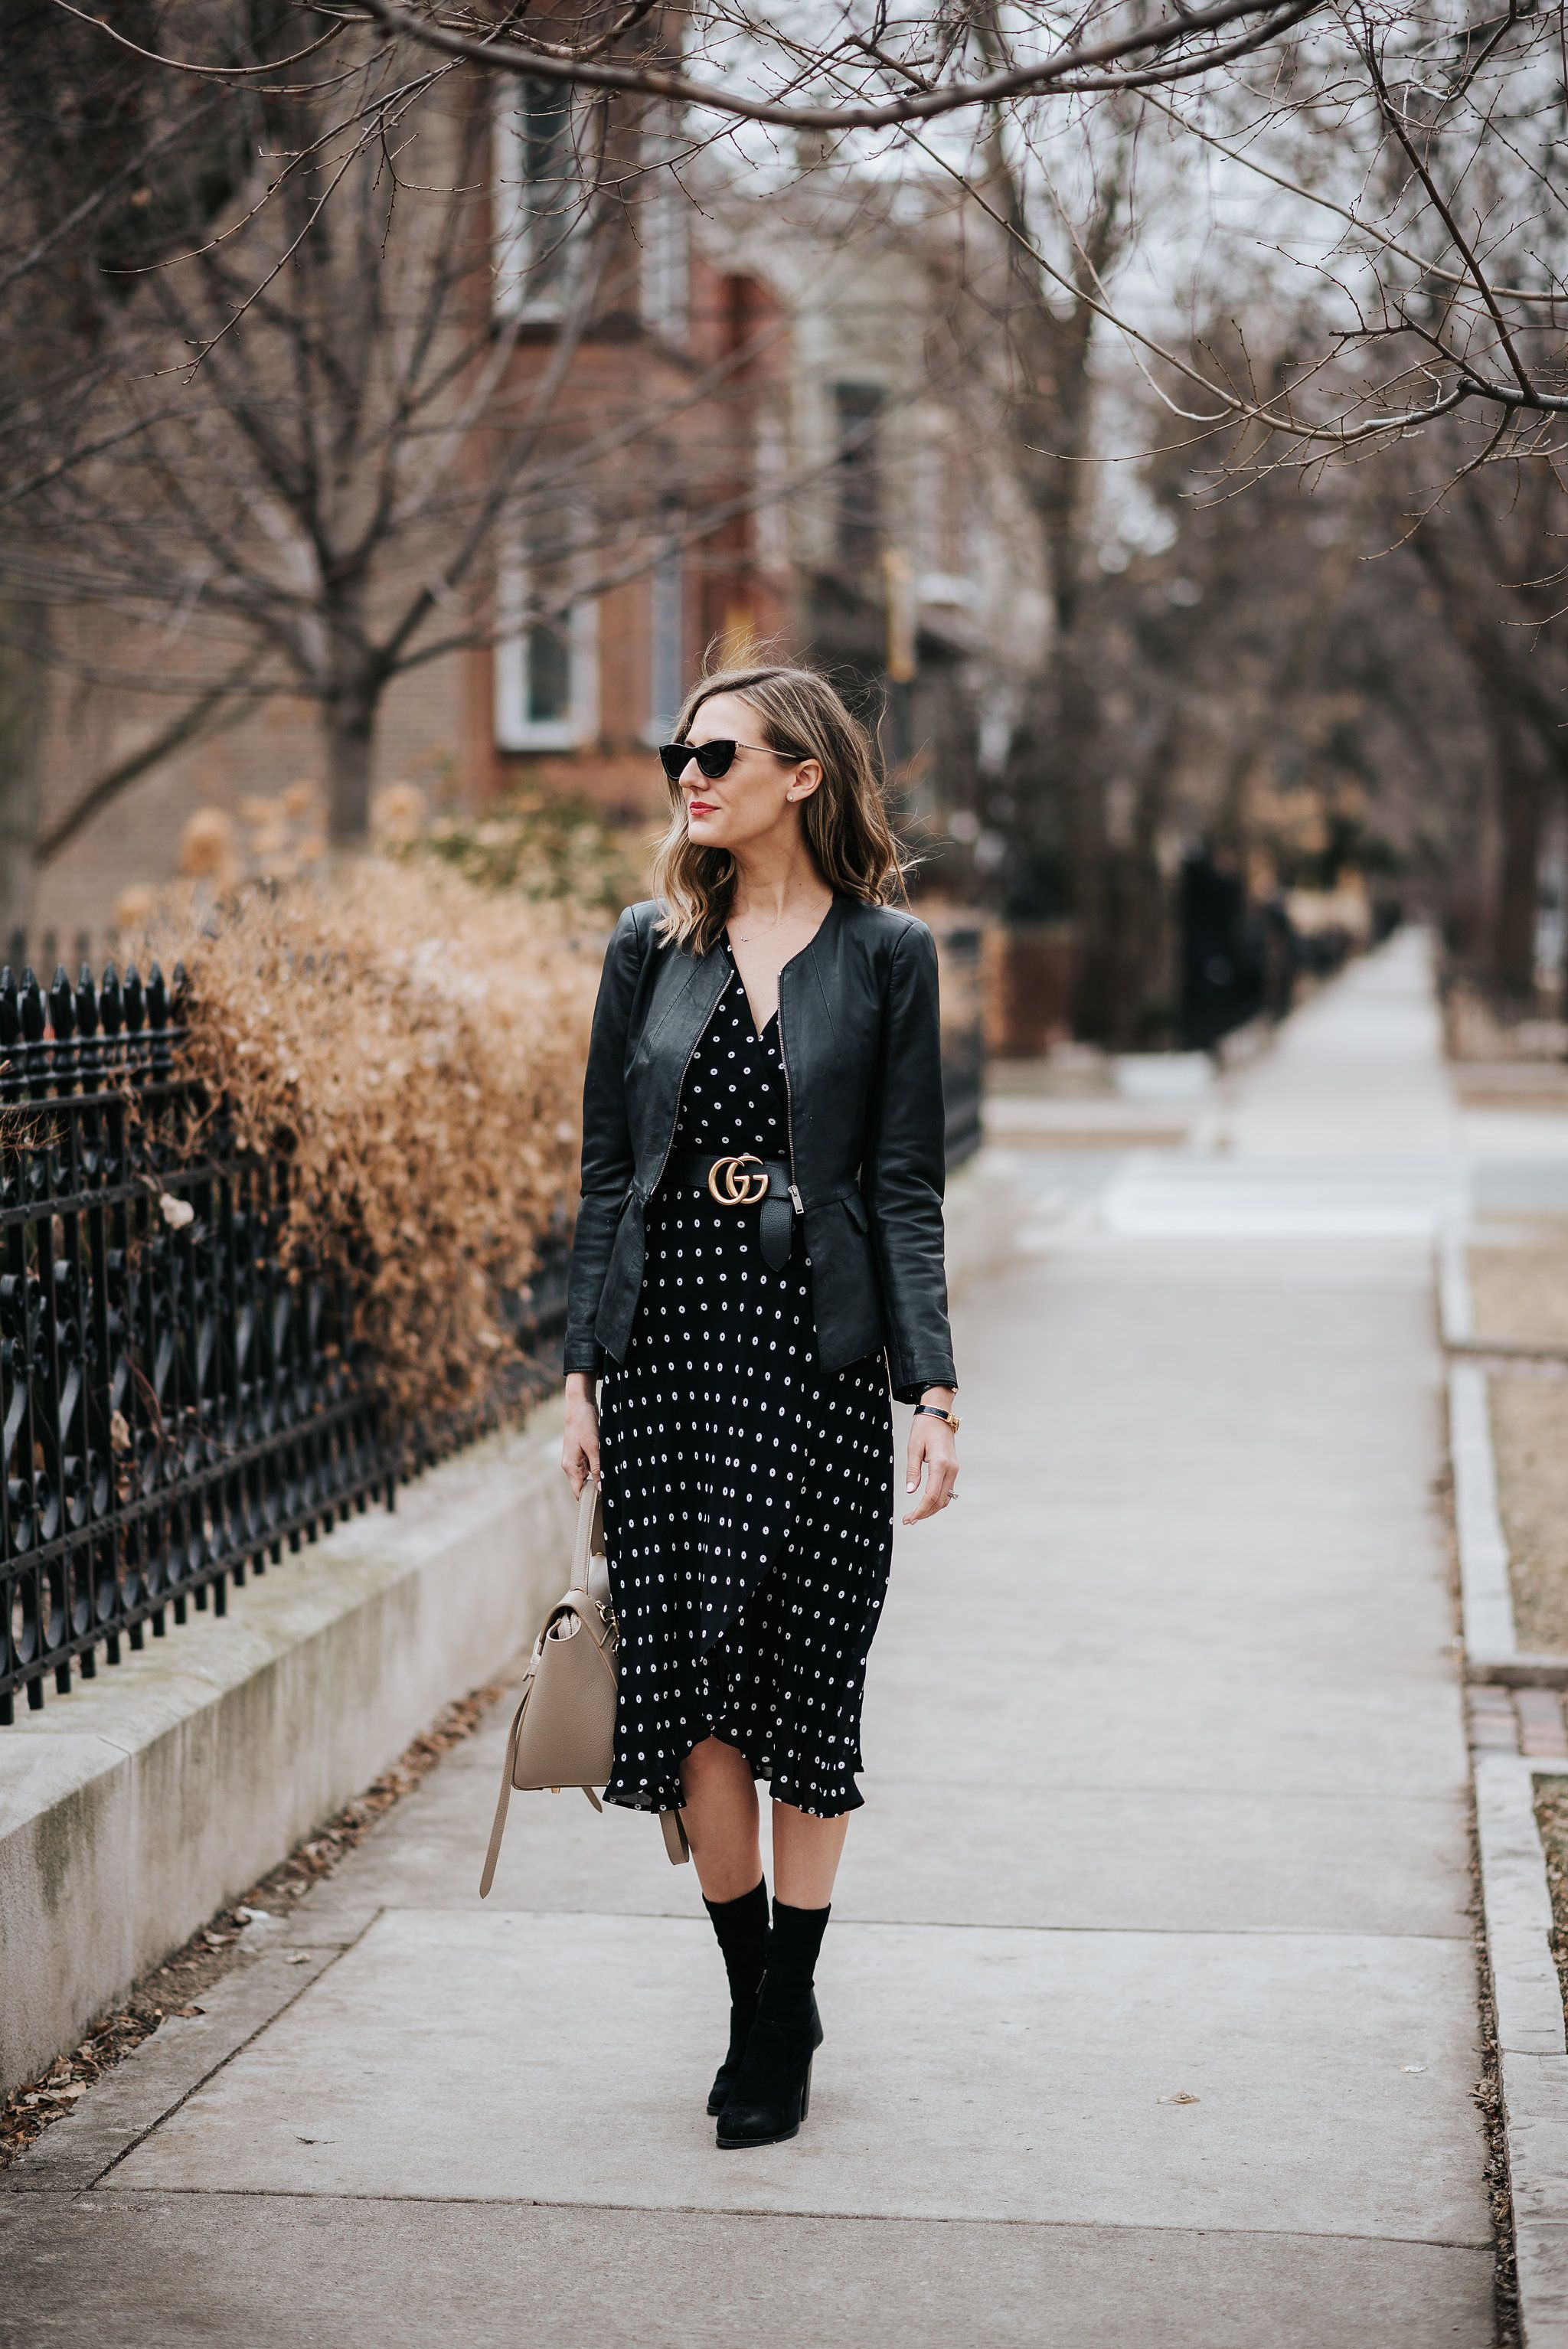 Polka Dot Midi Dress How To Transition Wardrobe From Winter To Spring White Floral Dress Outfit Winter Dress Outfits Floral Dress Outfits [ 3068 x 2048 Pixel ]